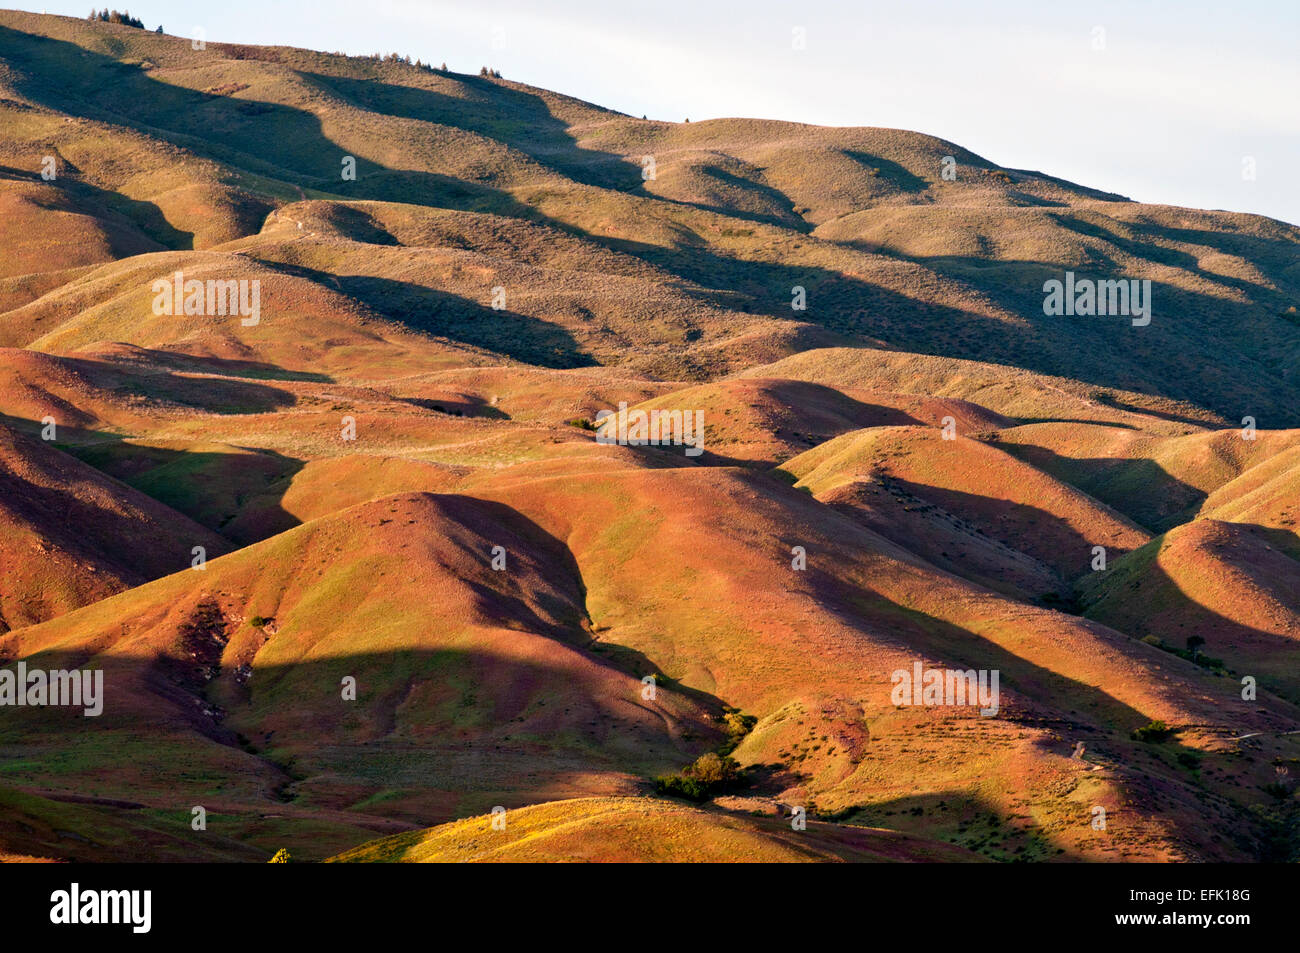 Foothills above Boise Idaho - Stock Image